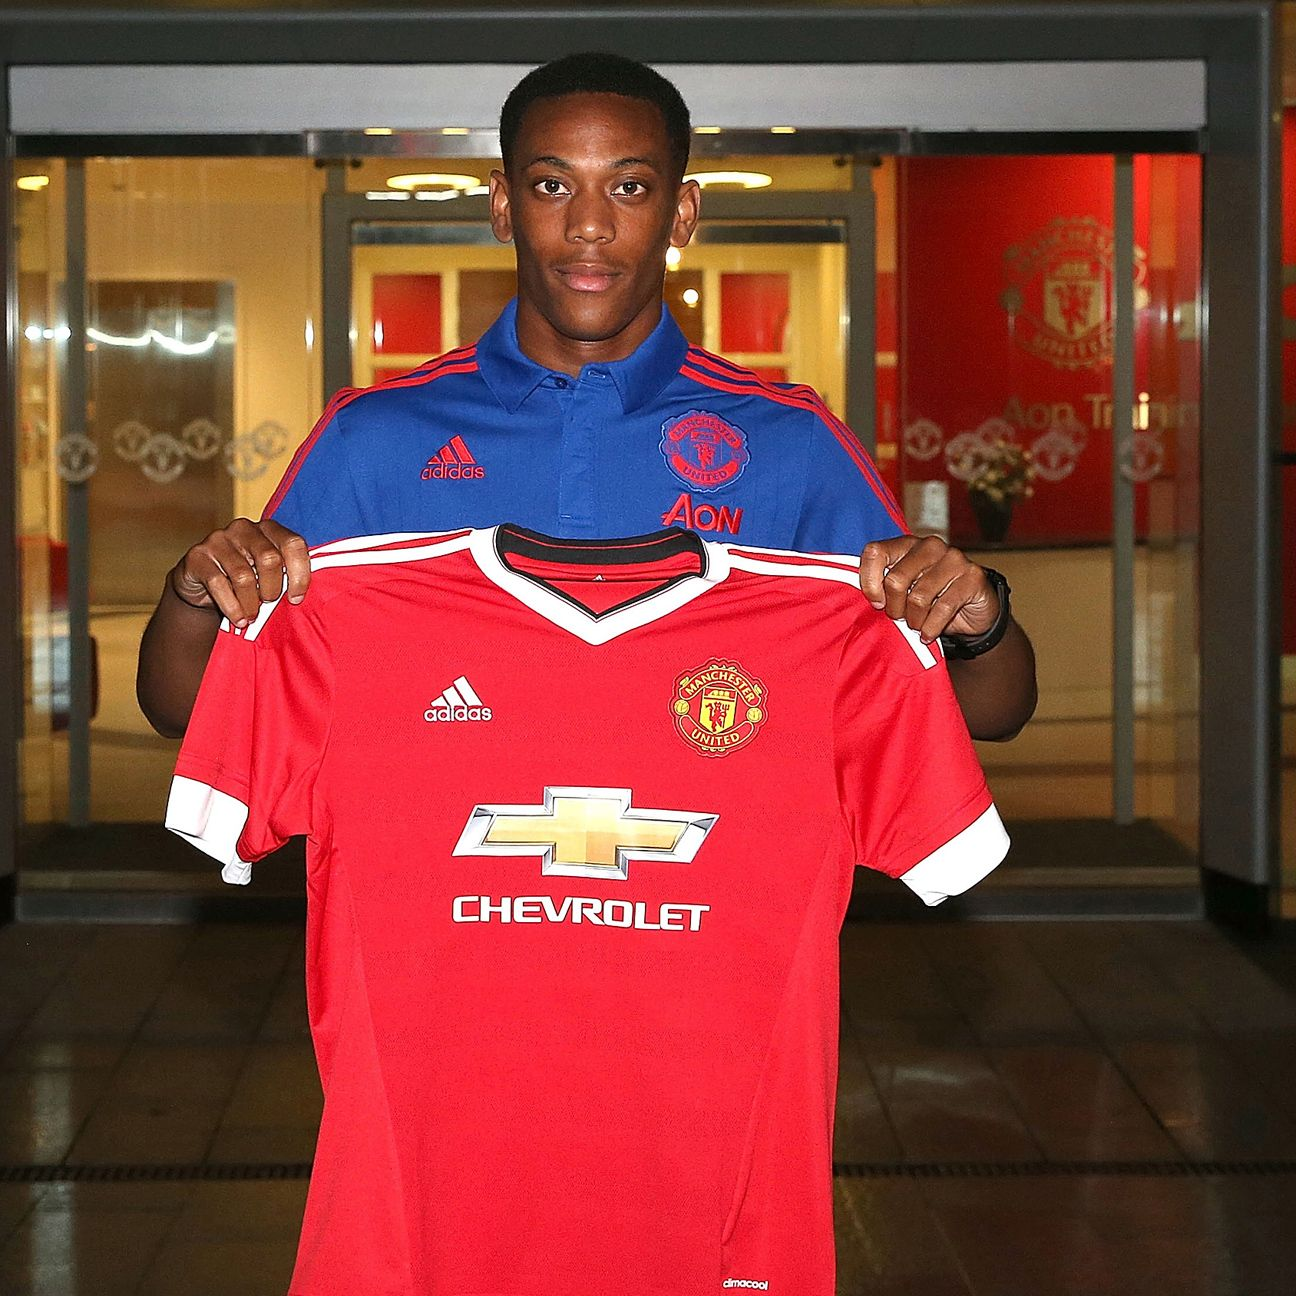 Manchester United paid big money for 19-year-old Anthony Martial. Will he pan out at Old Trafford?